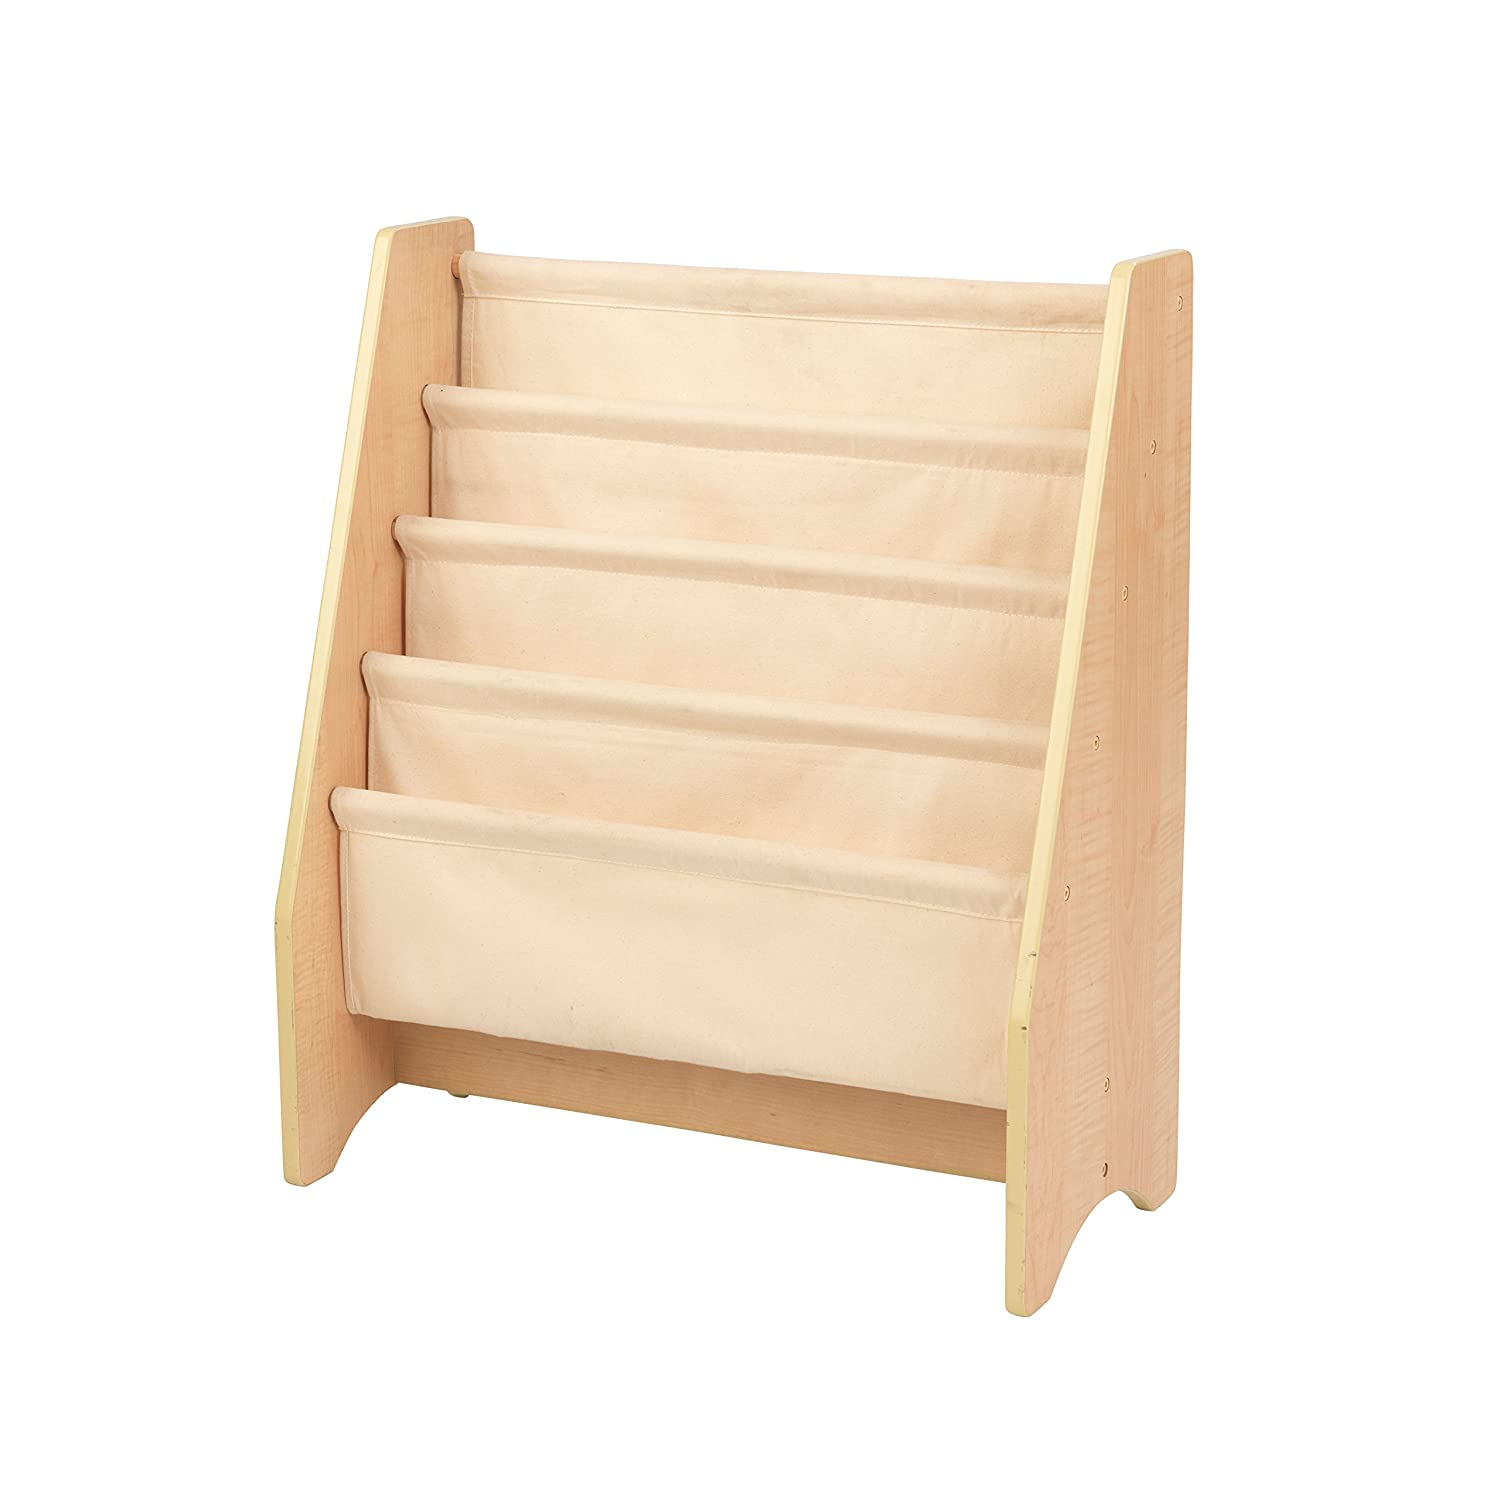 KidKraft 14221 Kids Sling Wooden Bookshelf, Children's bedroom furniture, bookcase display and storage rack - Natural Colors